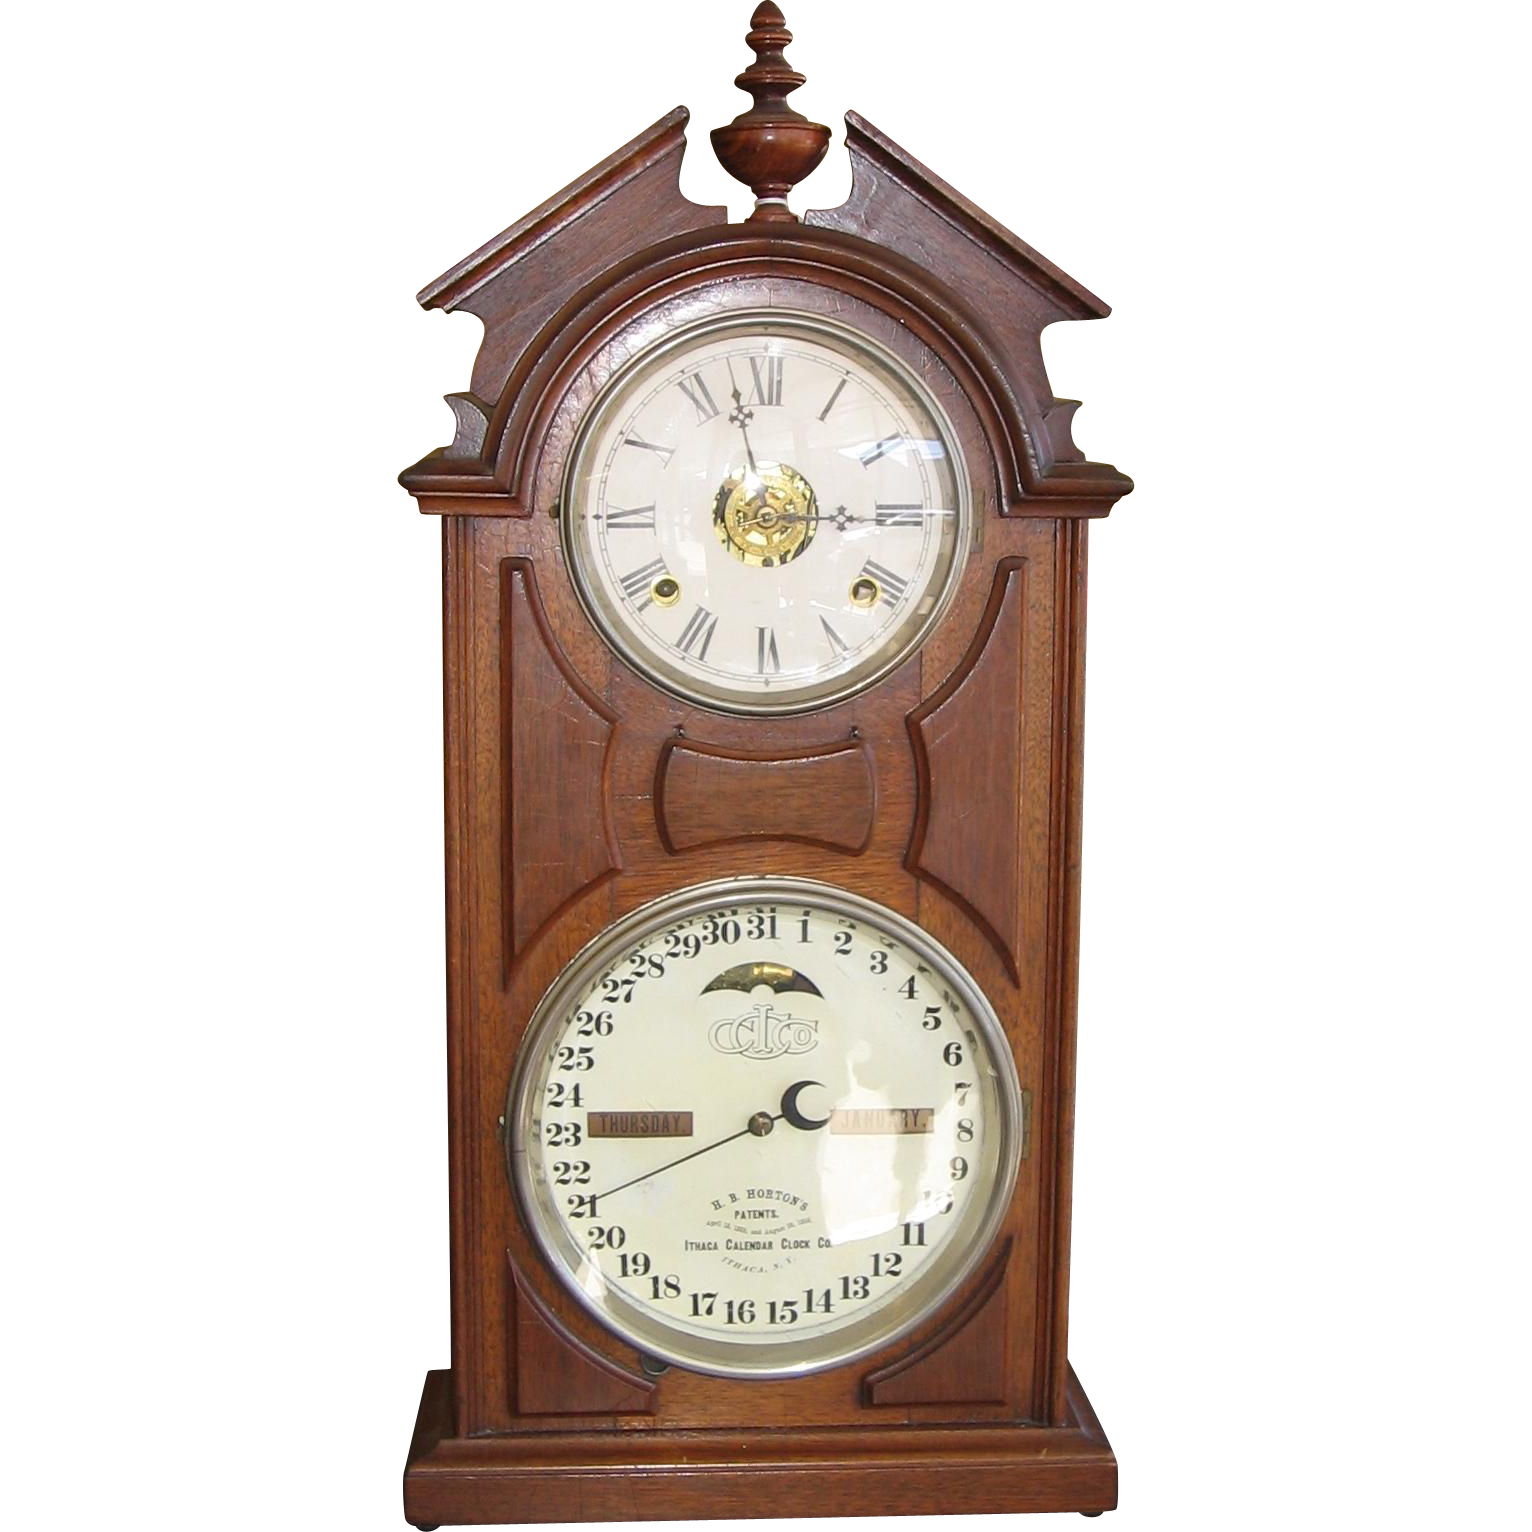 Ithaca Double Dial Calendar Clock #8 Library Model